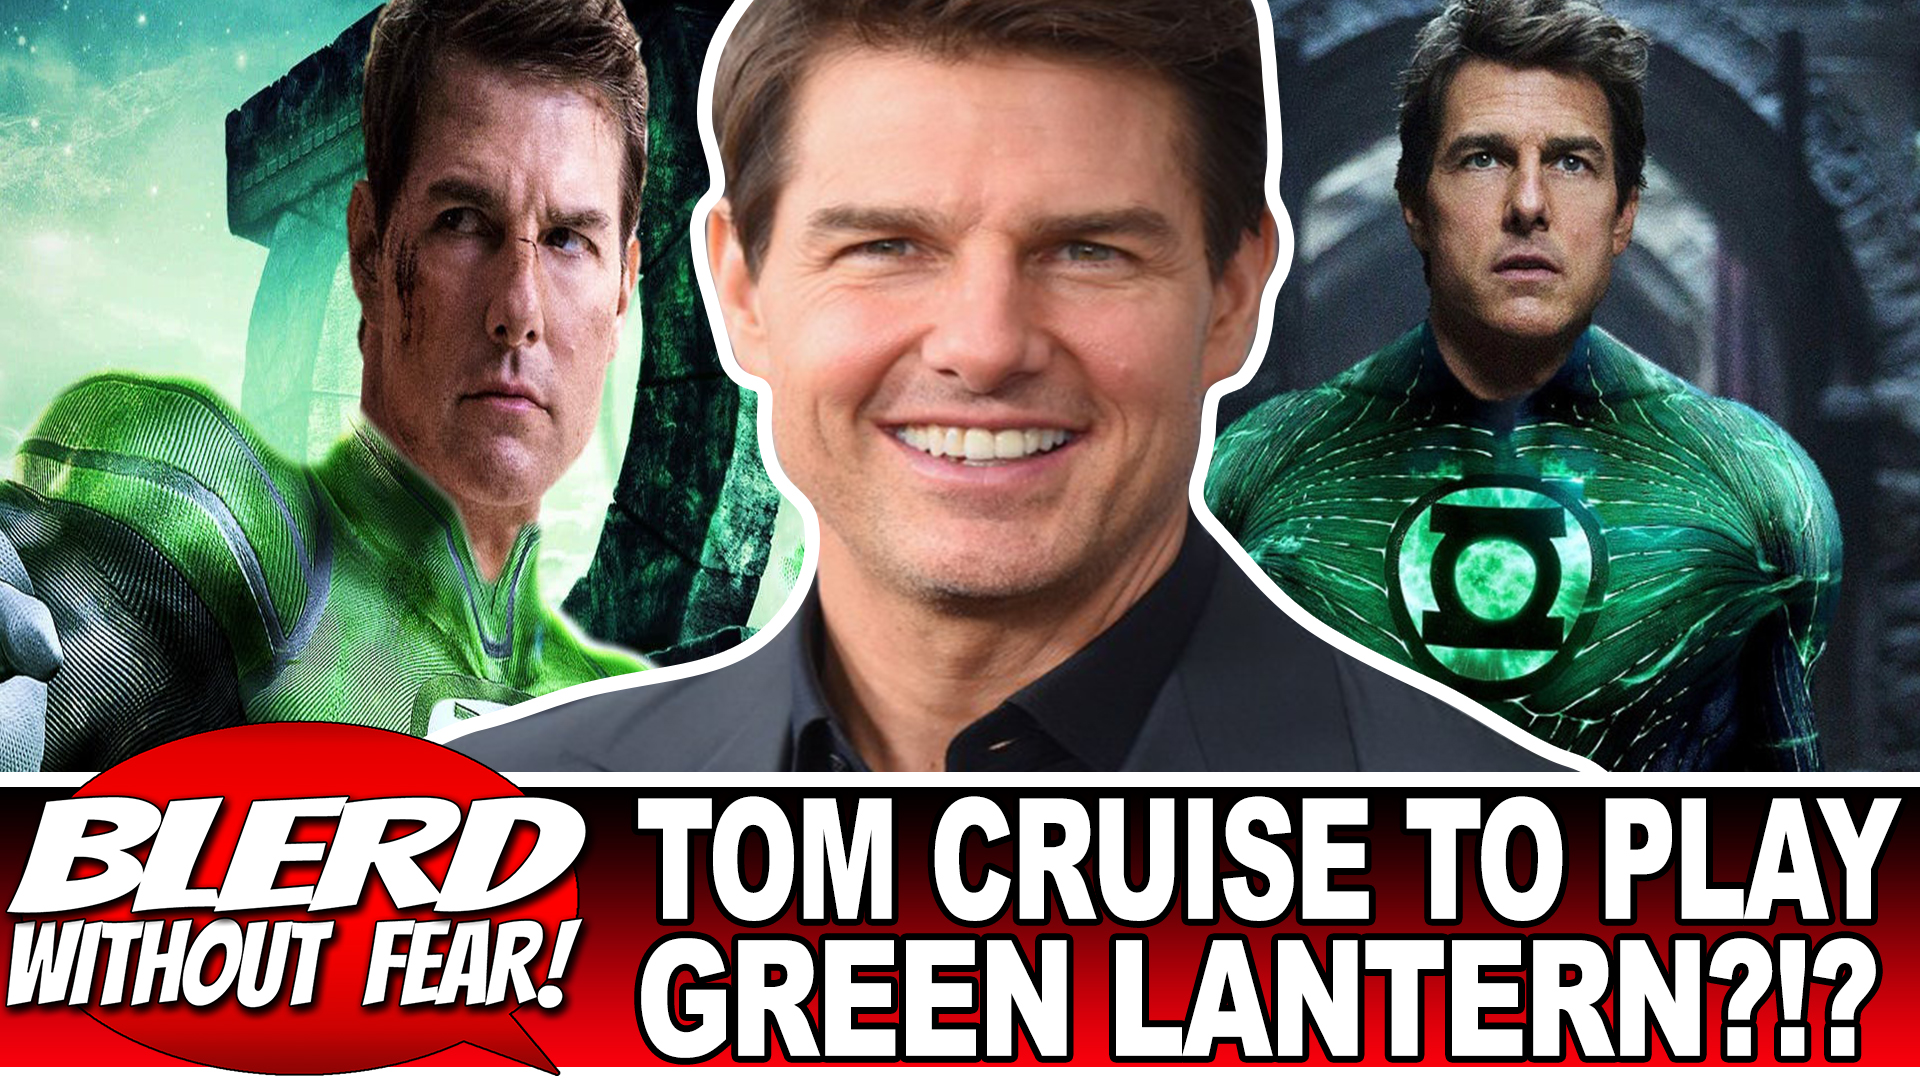 tom cruise green lantern.jpg